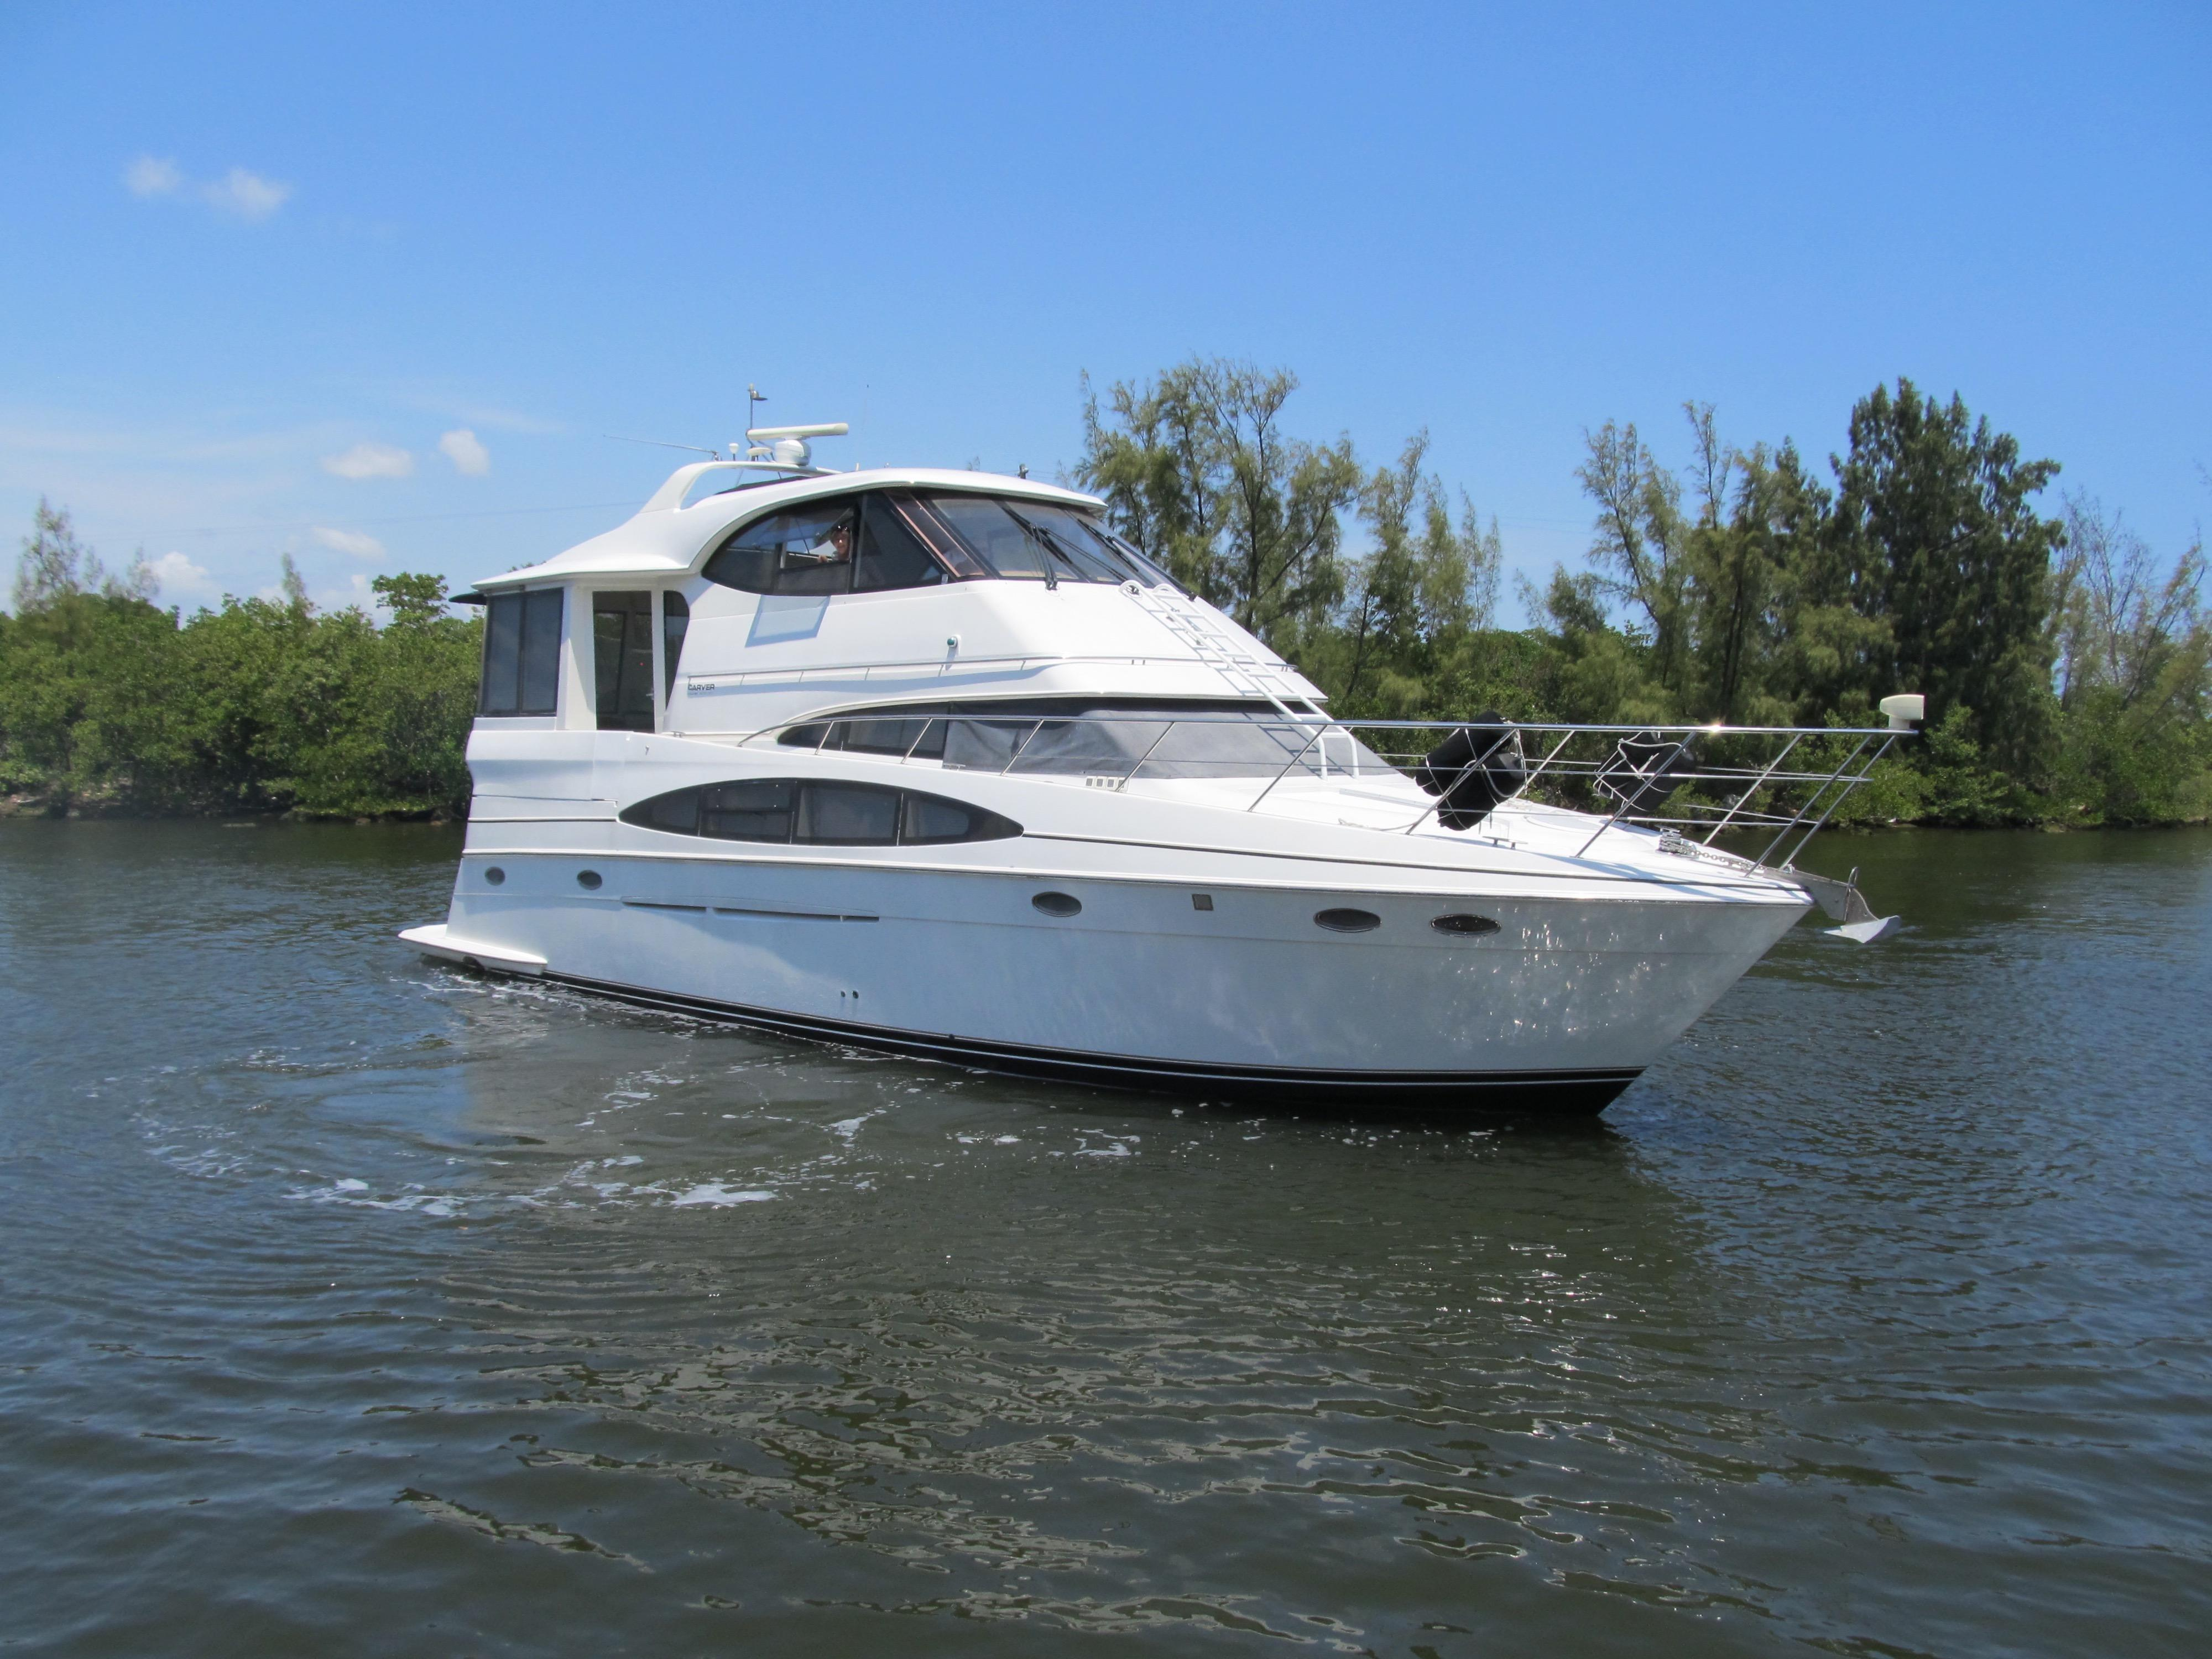 2001 carver motor yacht for sale for Large motor yachts for sale